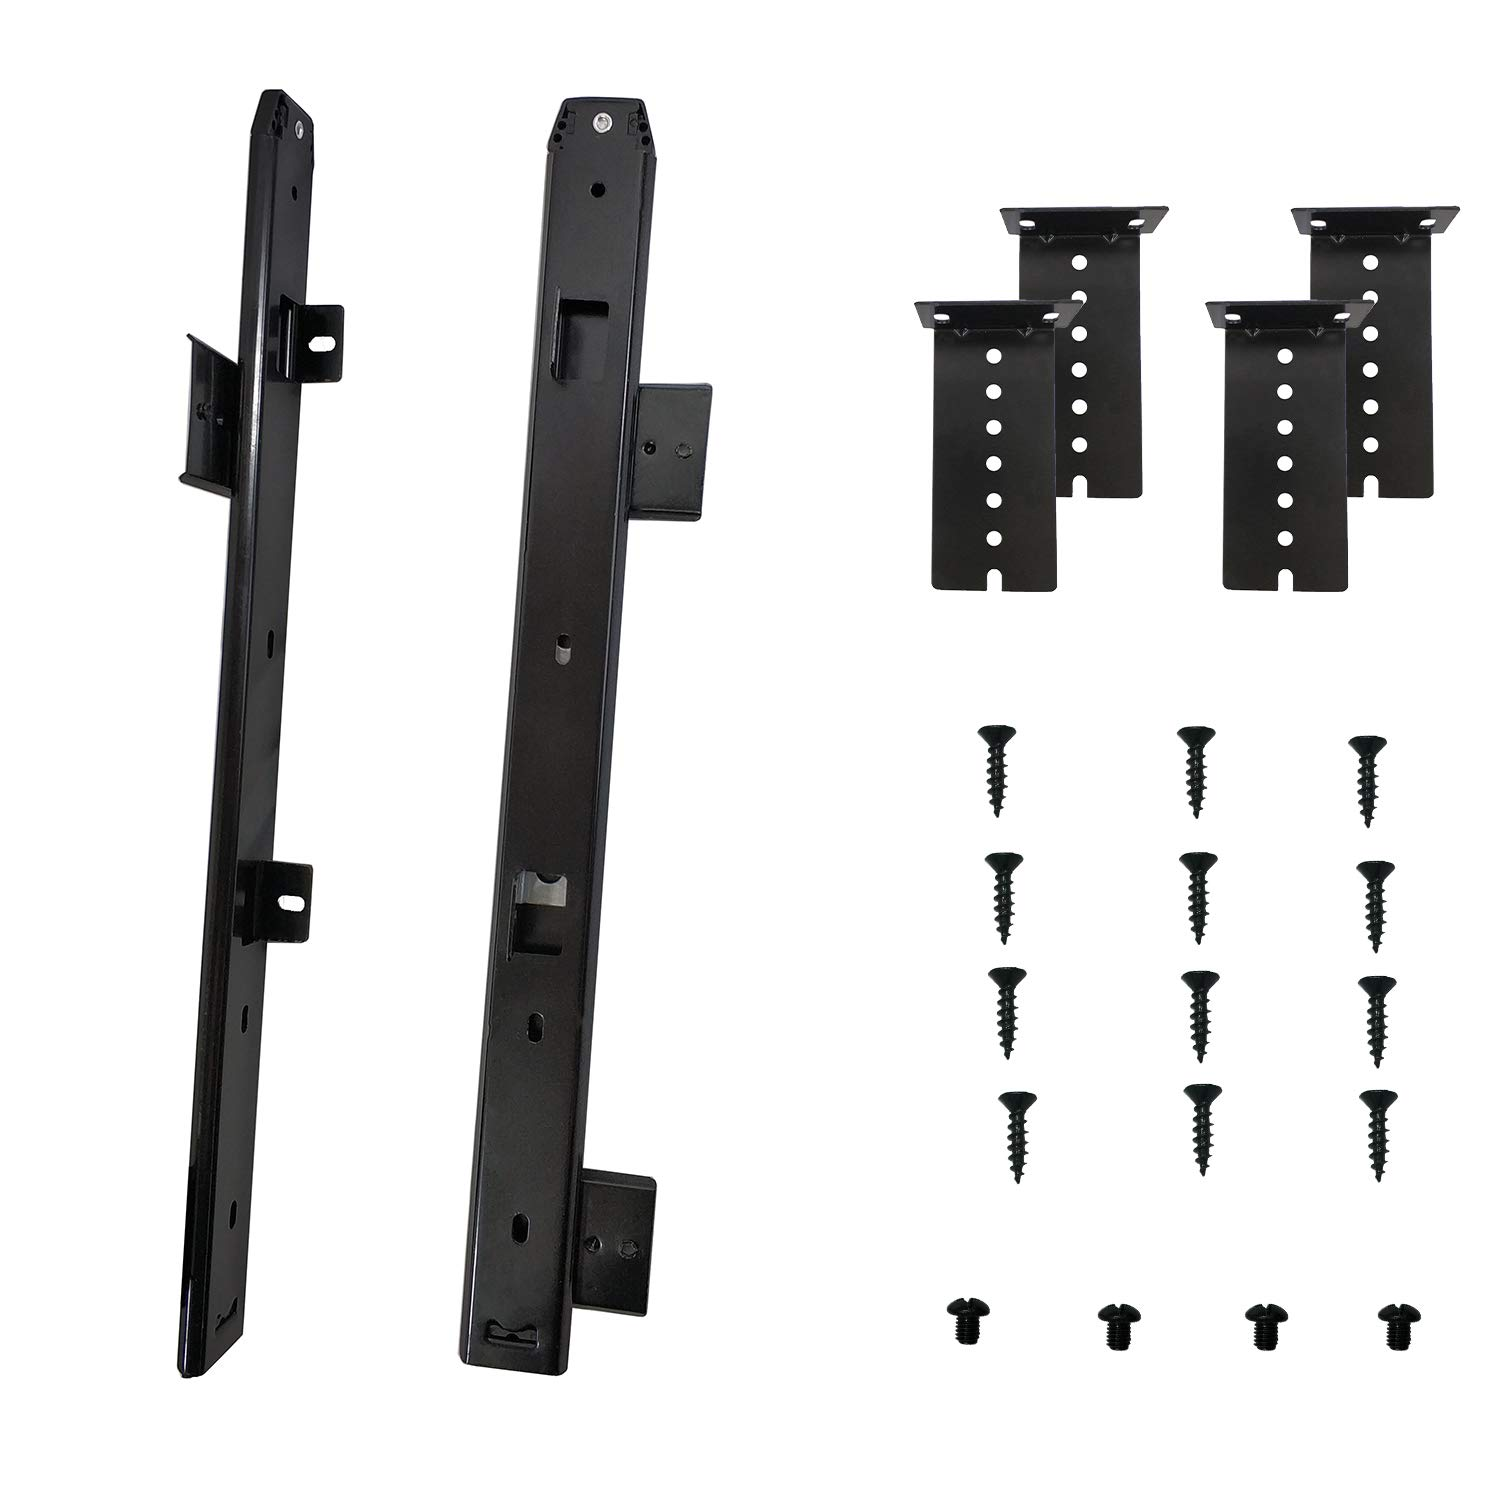 FRMSAET Heavy Duty Thickness Steel Construction Soft - Close Ball Bearing 18'' Slides Cabinet Furniture Hardware Rails Keyboard Drawer Tray Accessories Adjustable Hight Mount Bracket/Include Screws.